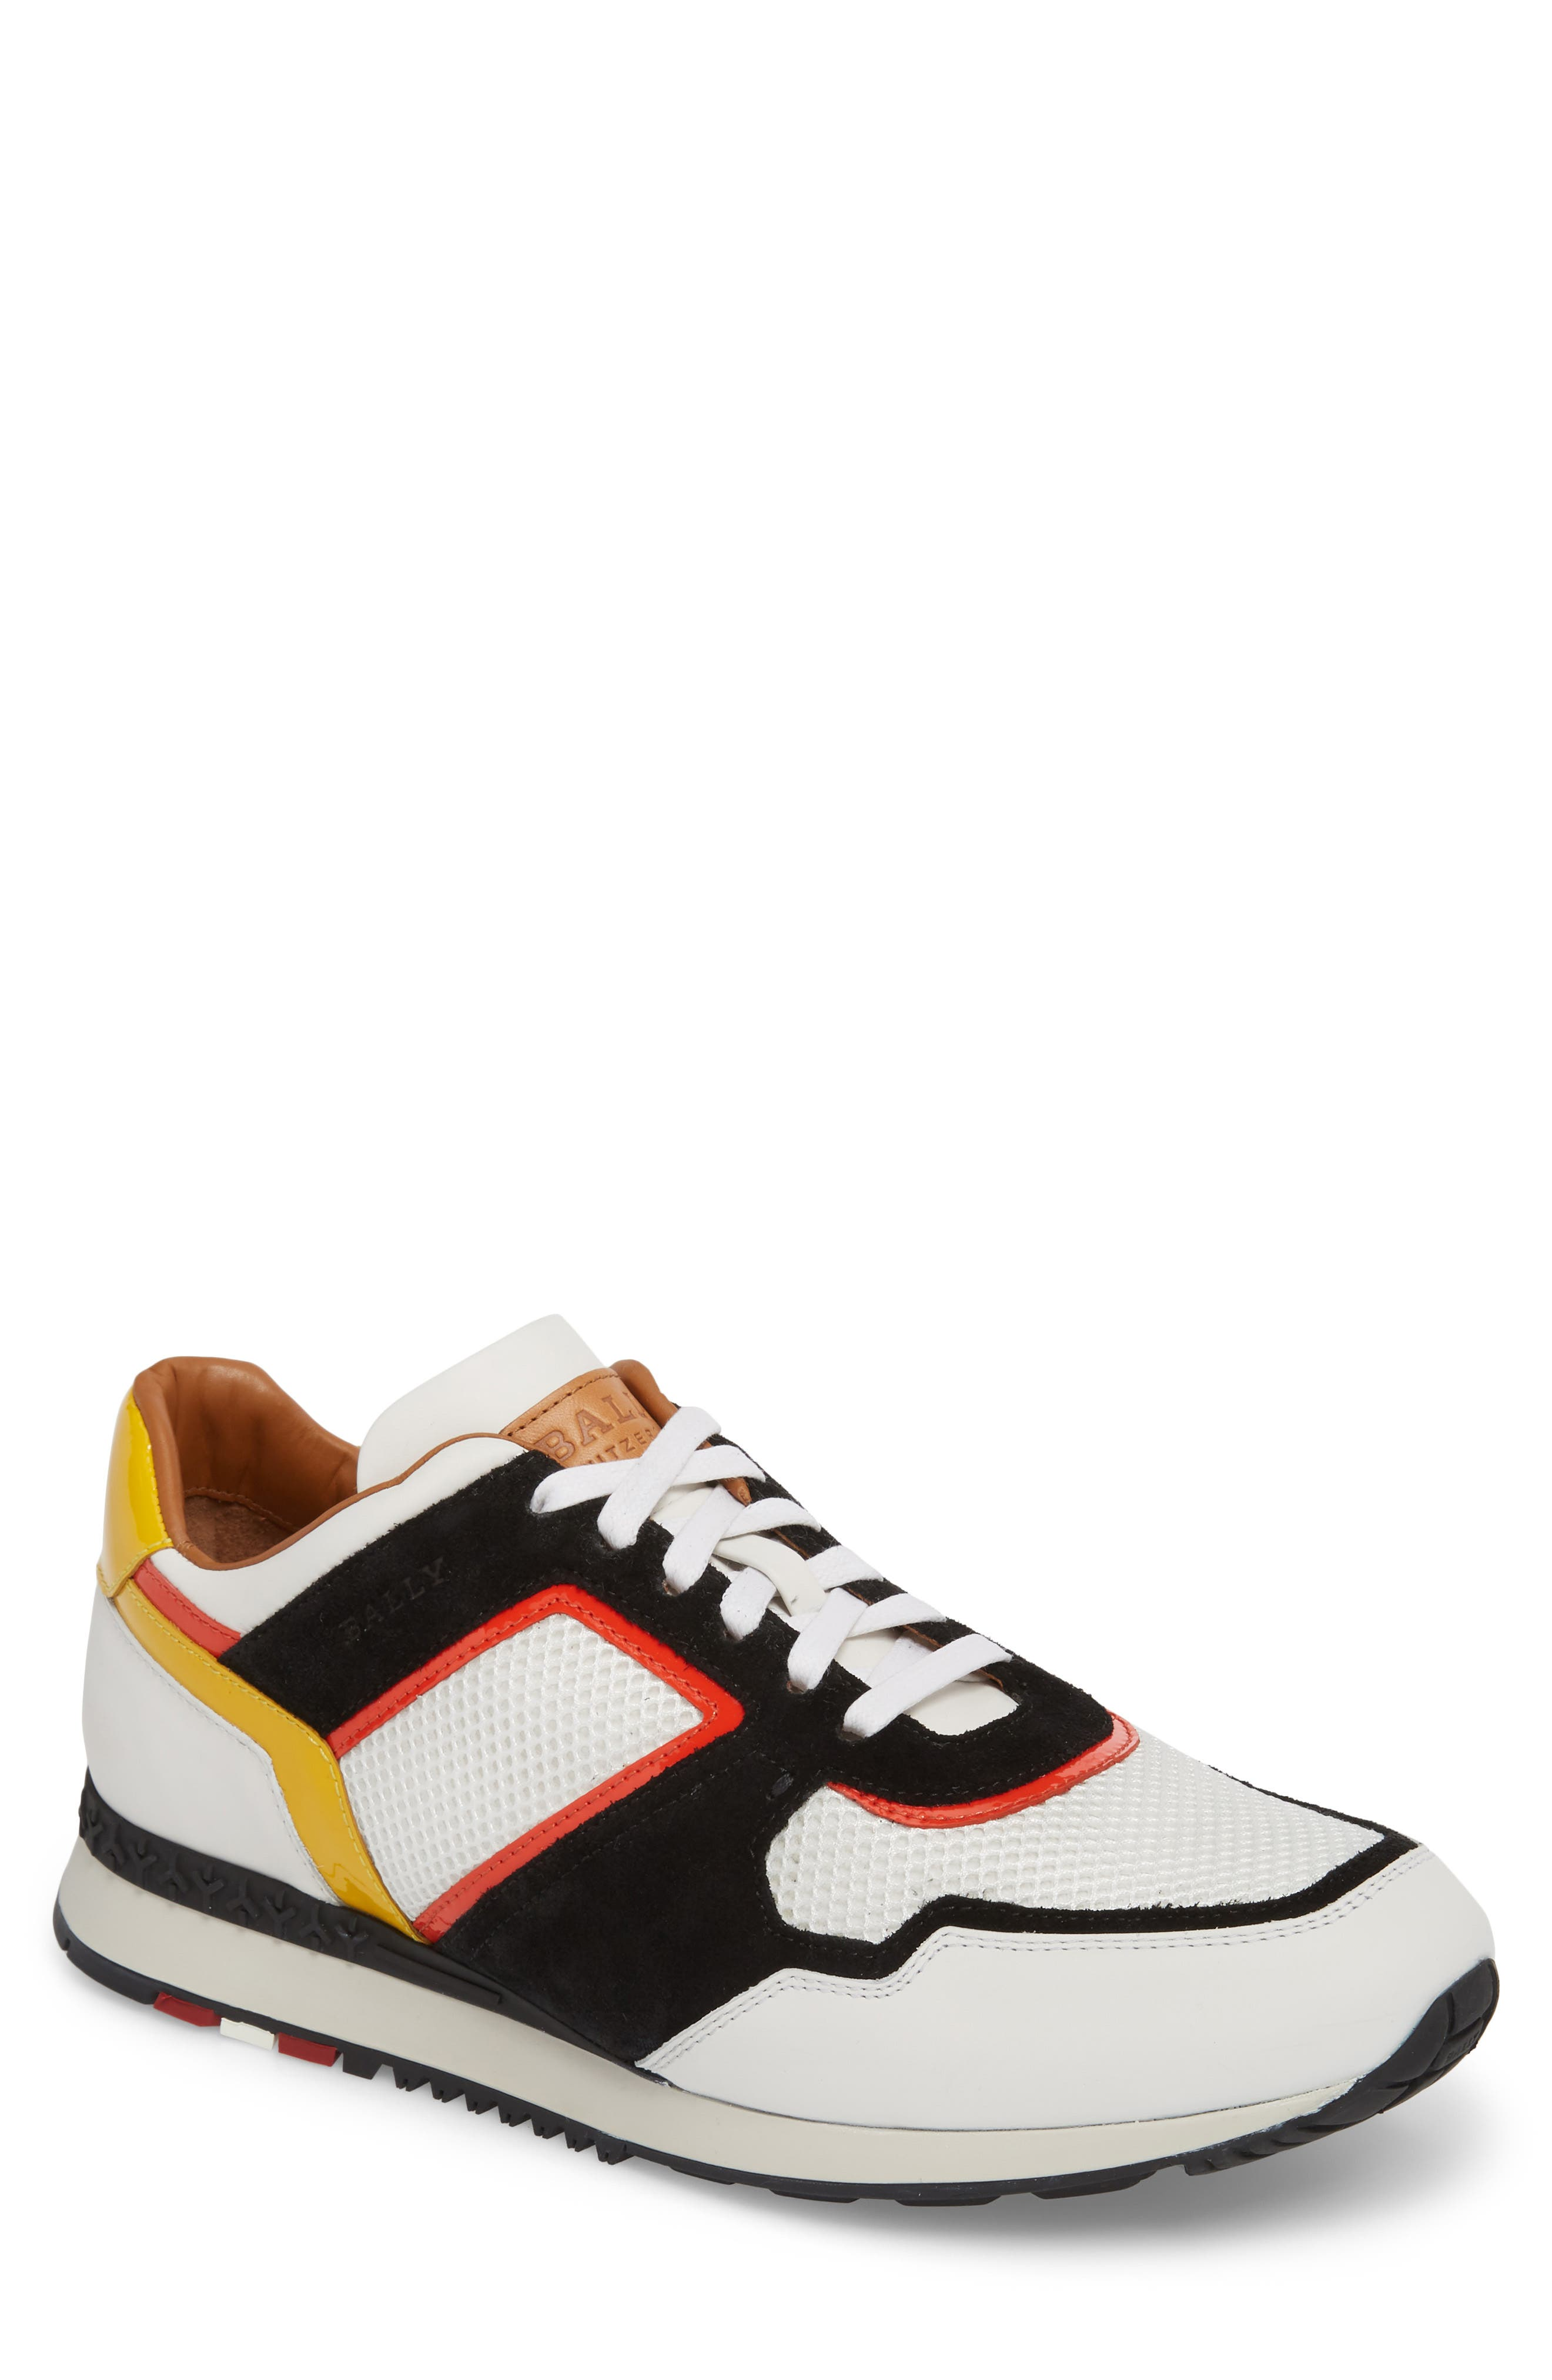 Astreo Low Top Sneaker,                         Main,                         color, 109